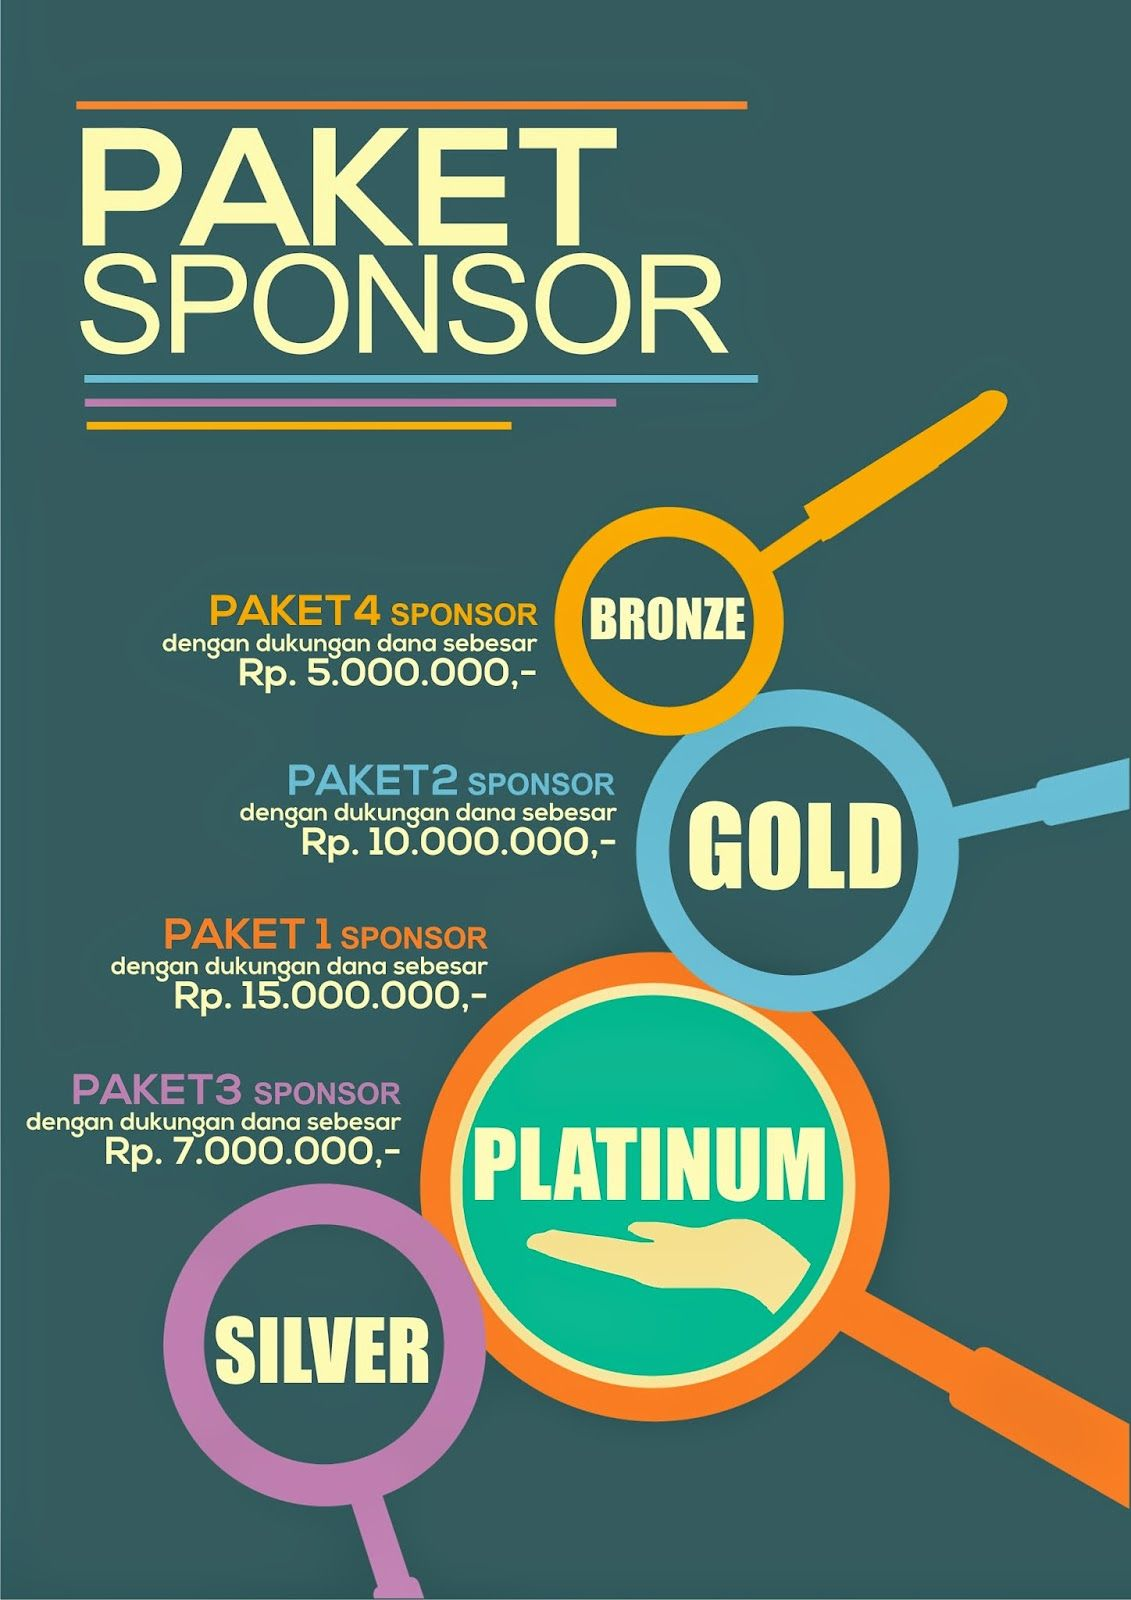 sponsorship proposal design Google Search Design – Sponsorship Proposals for Events